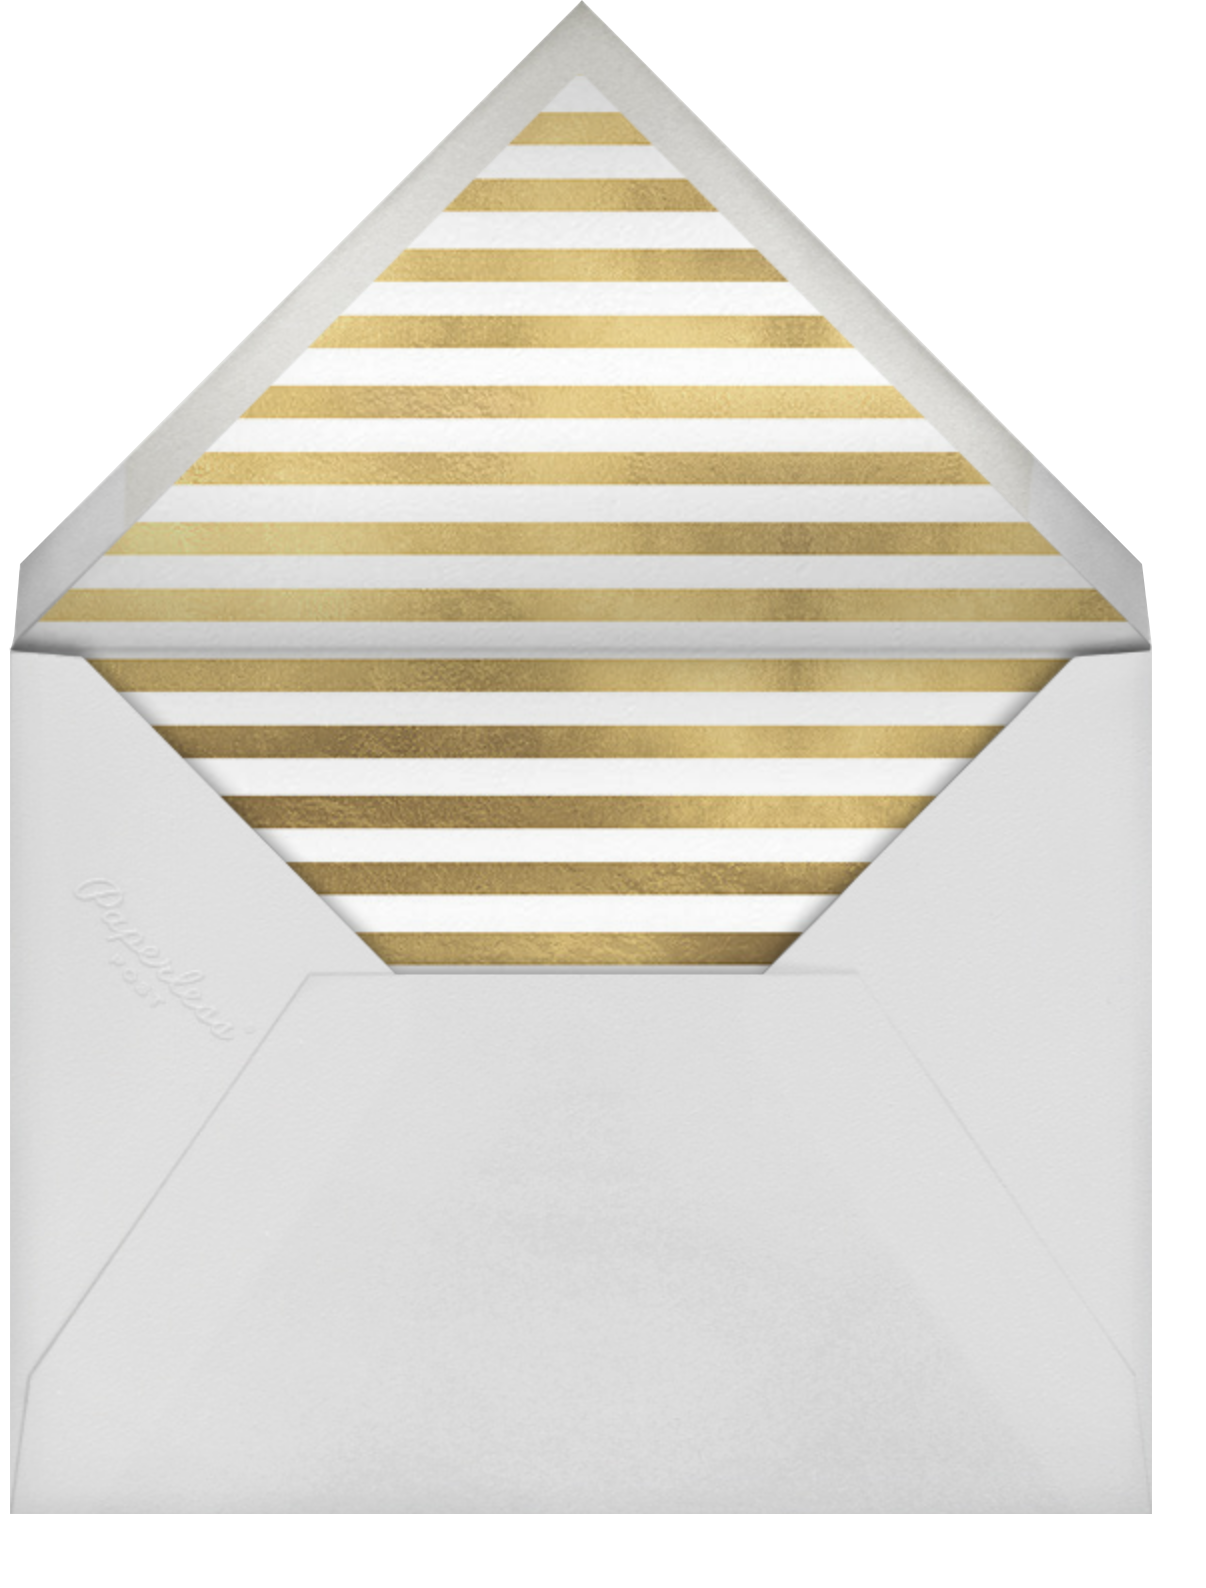 Deco Trees (Square) - Cadet - kate spade new york - Business holiday cards - envelope back